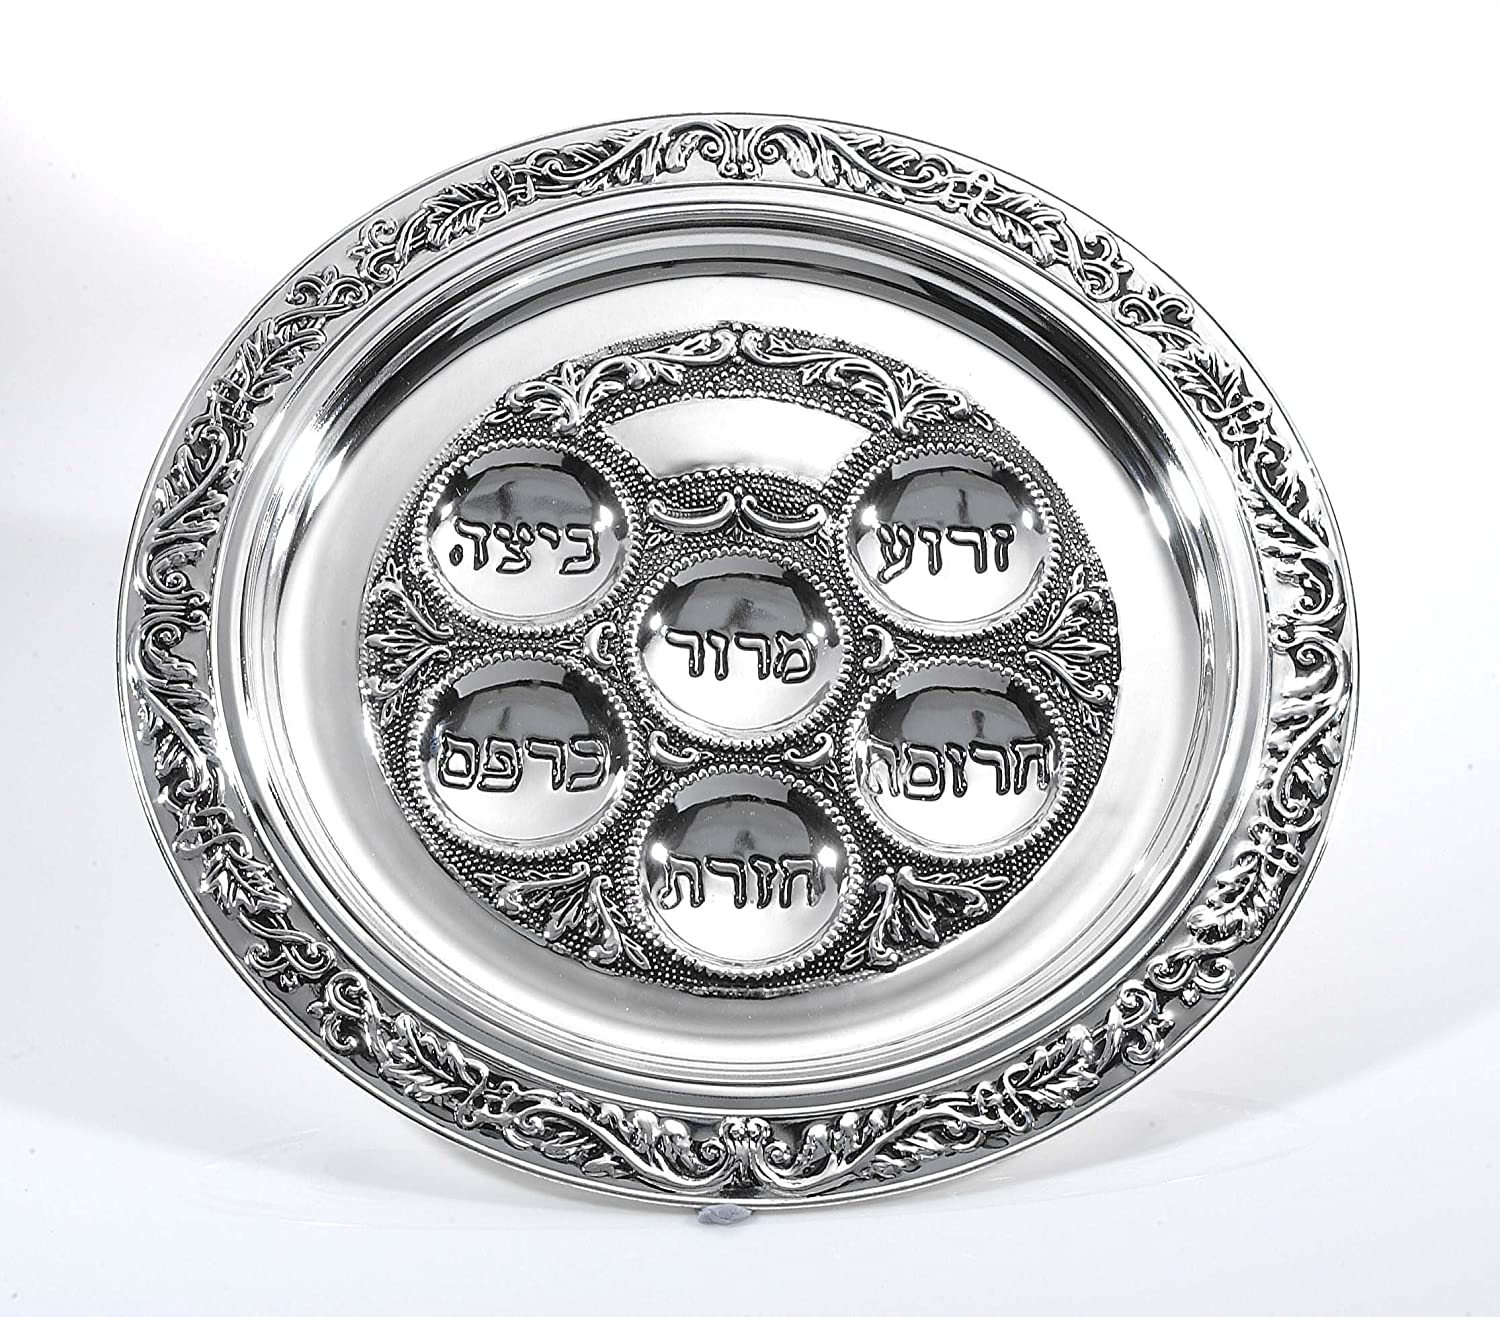 Legacy Judaica Passover Seder Plate (Karah), Specifically Designed for the 6 Symbolic Foods Eaten at the Passover Seder; Silver-Plated, 16